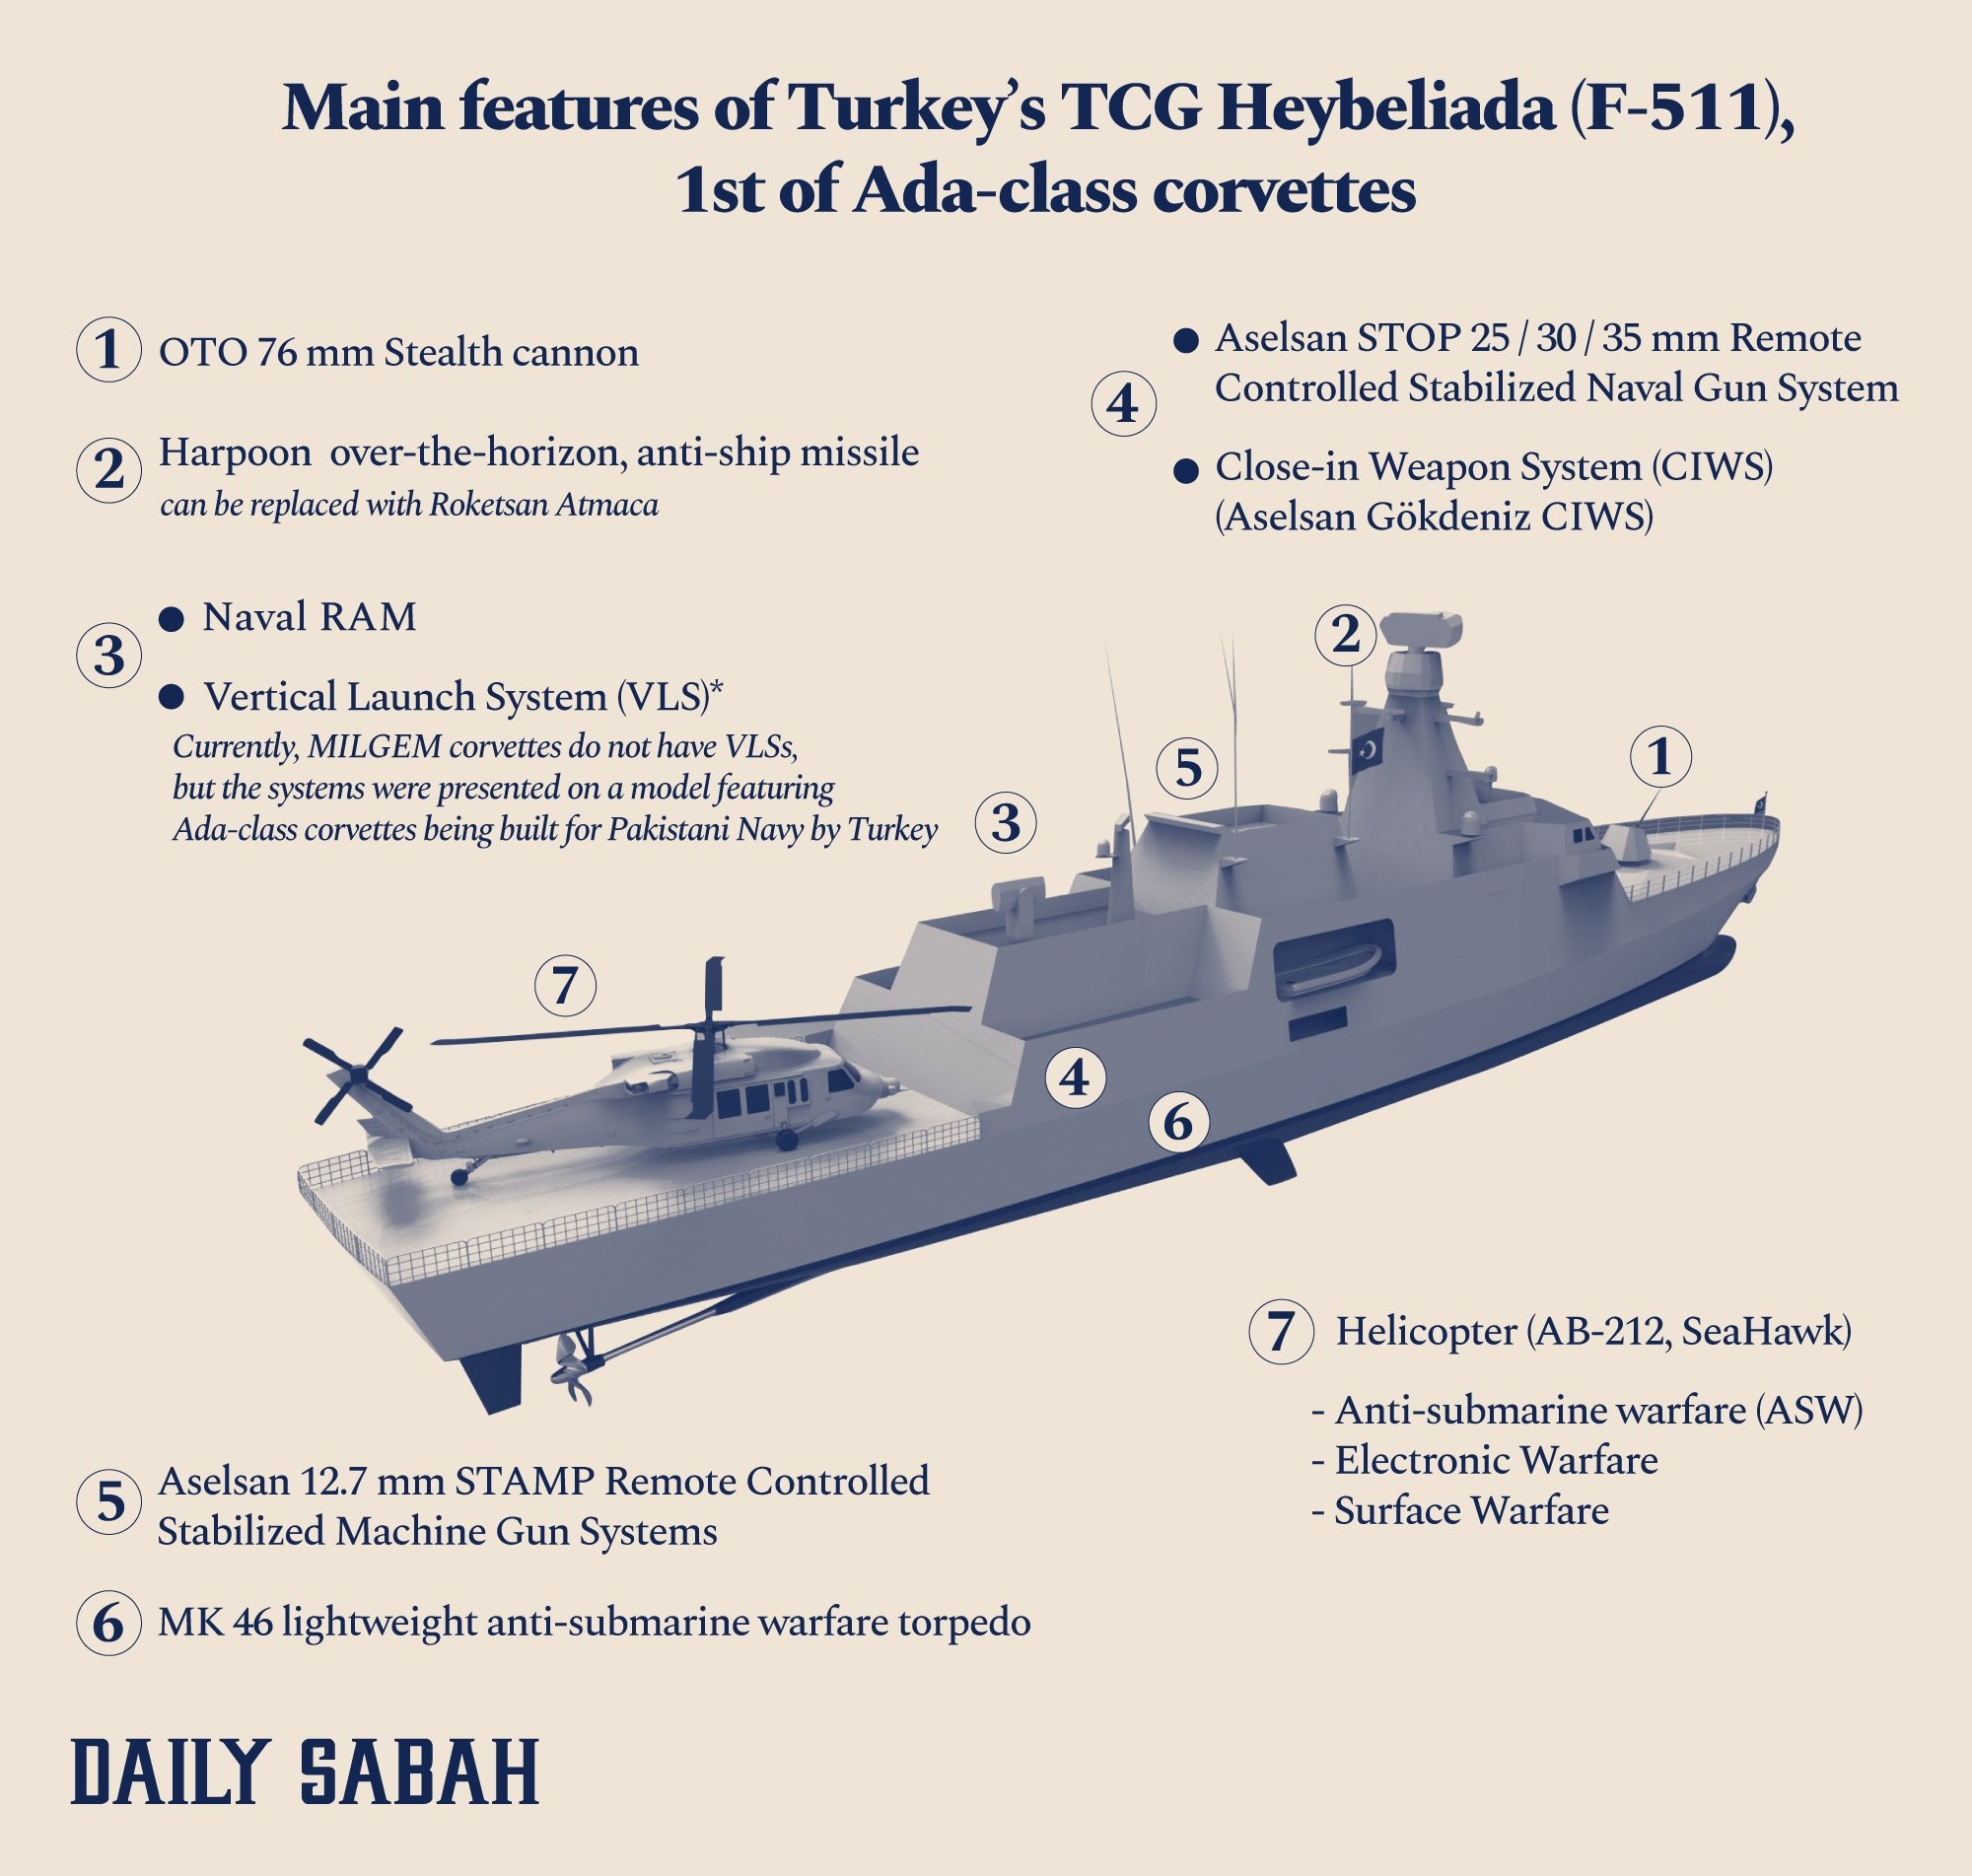 An infographic shows the main features of TCG Heybeliada corvette built for Turkish Navy.  (By Asene Asanova / Daily Sabah)